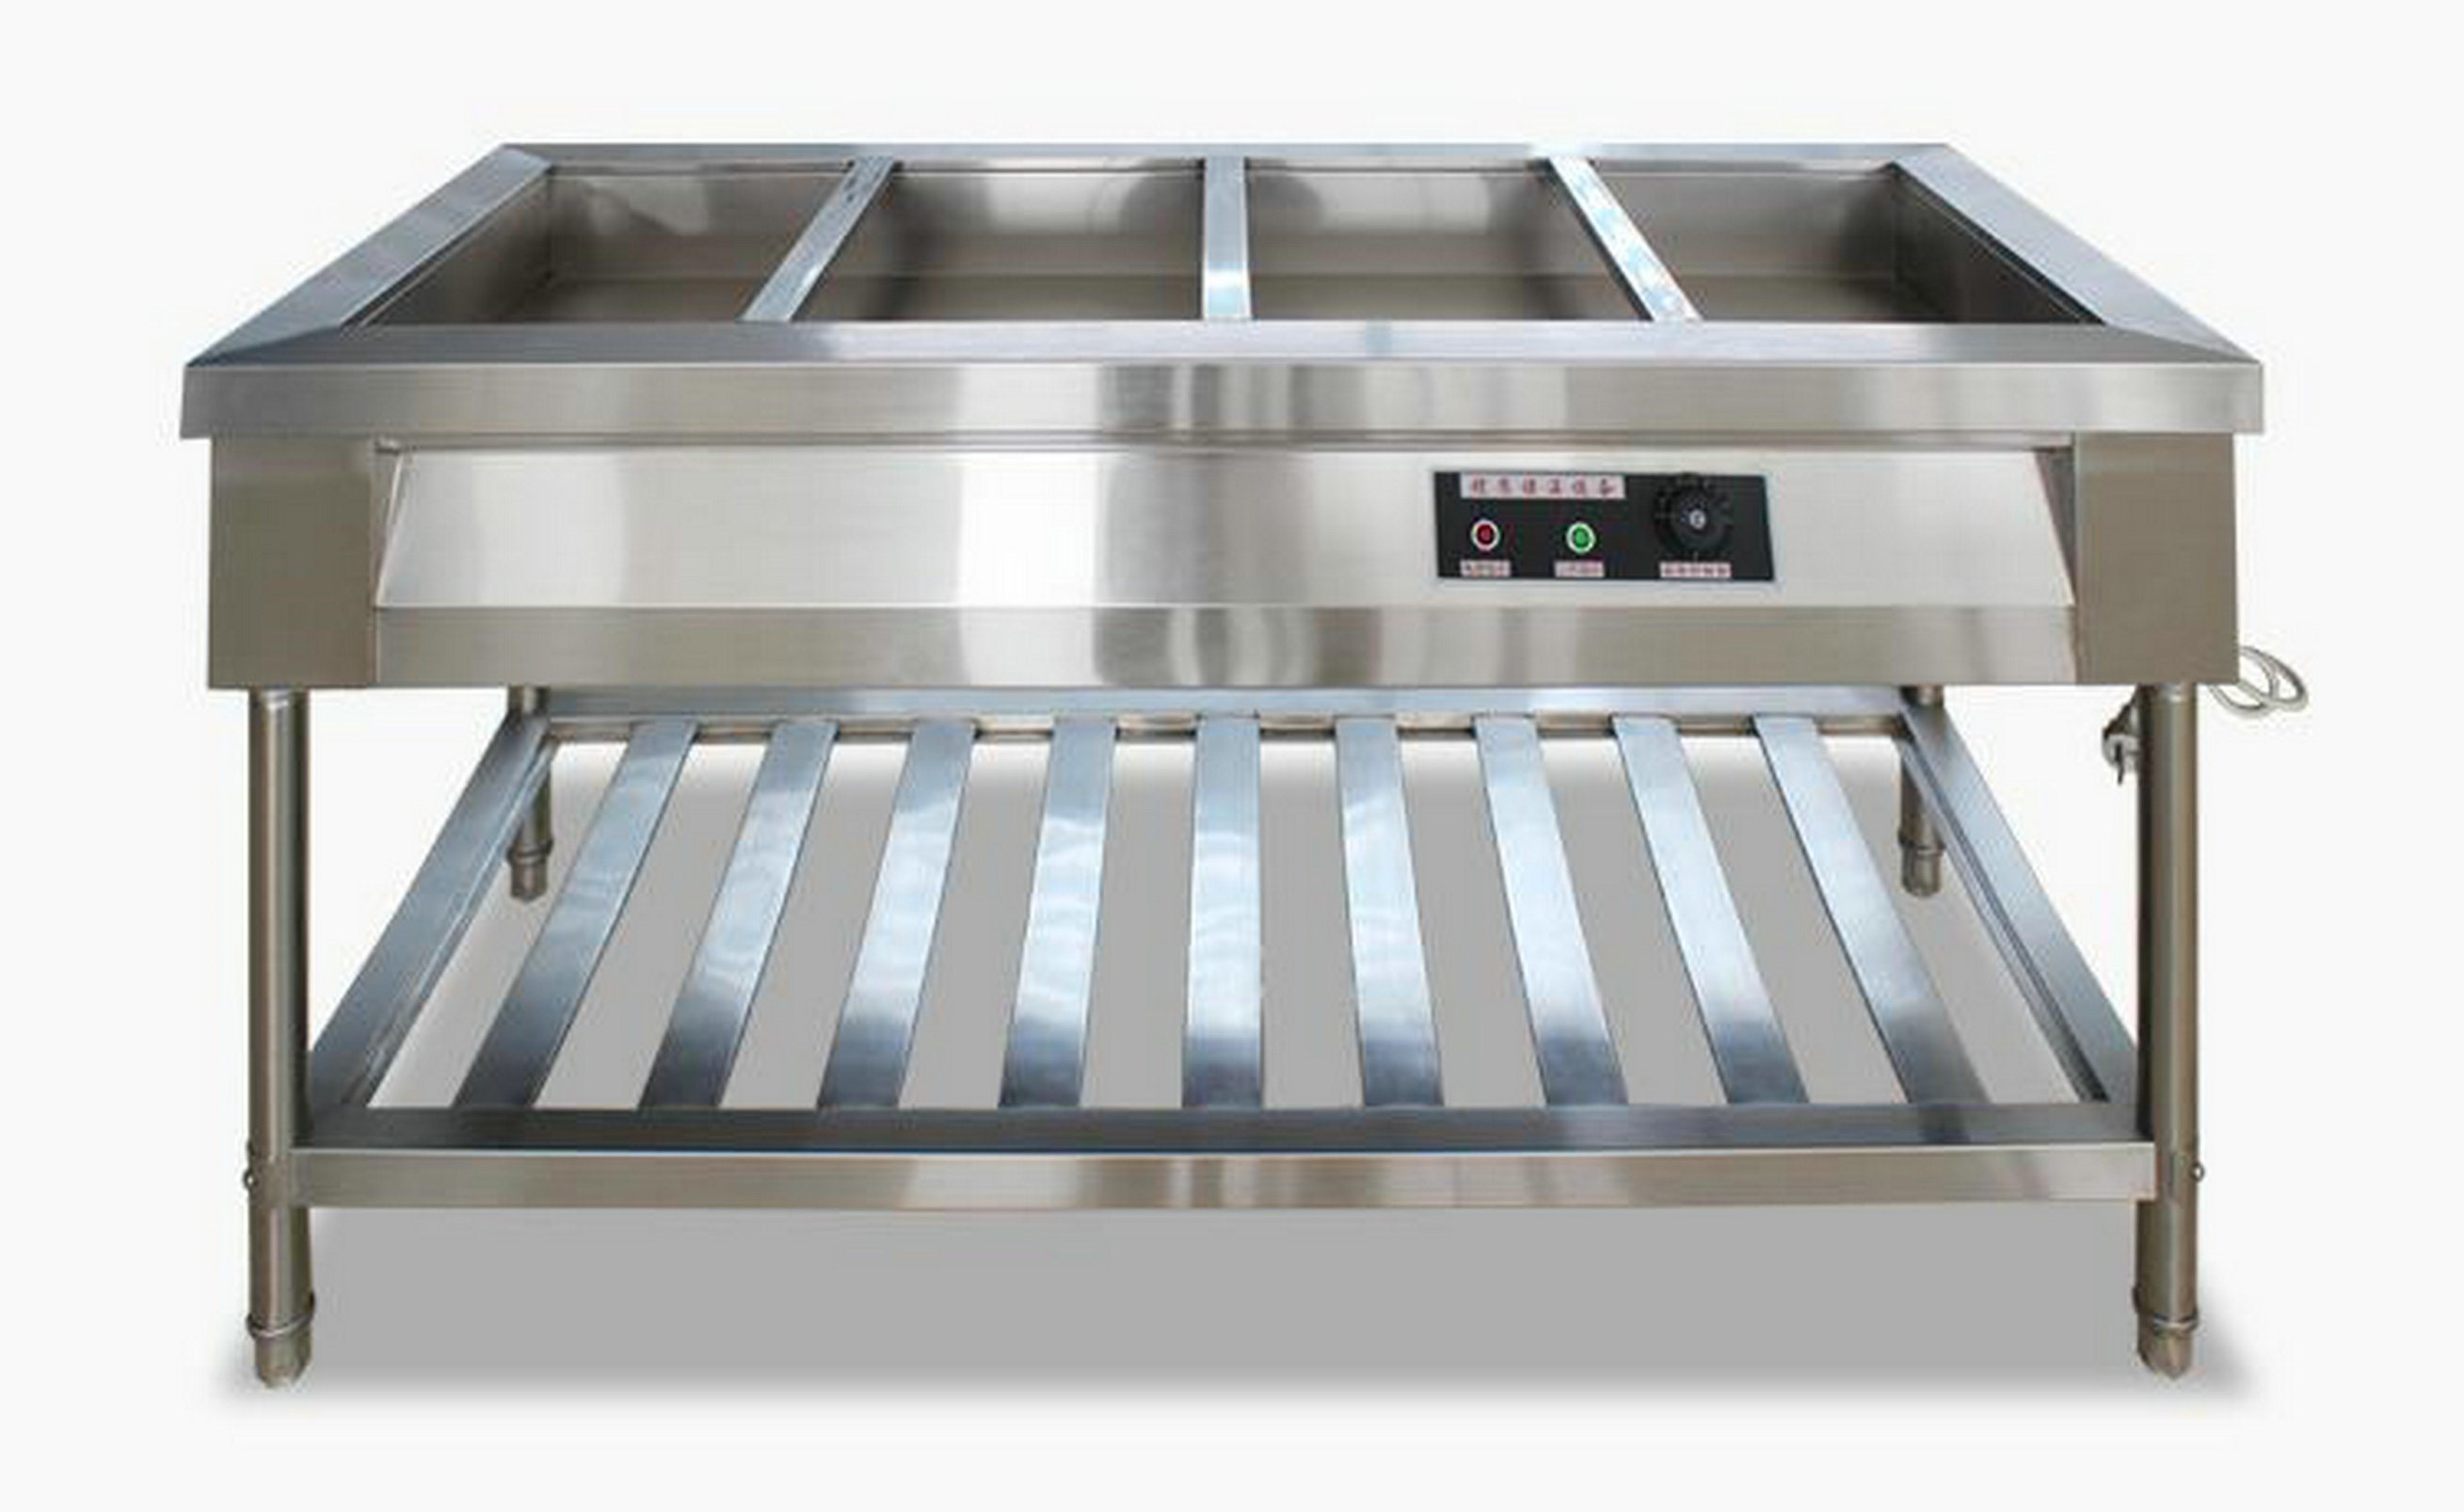 China Catering Stainless Steel Food Warmer for Restaurant Dining